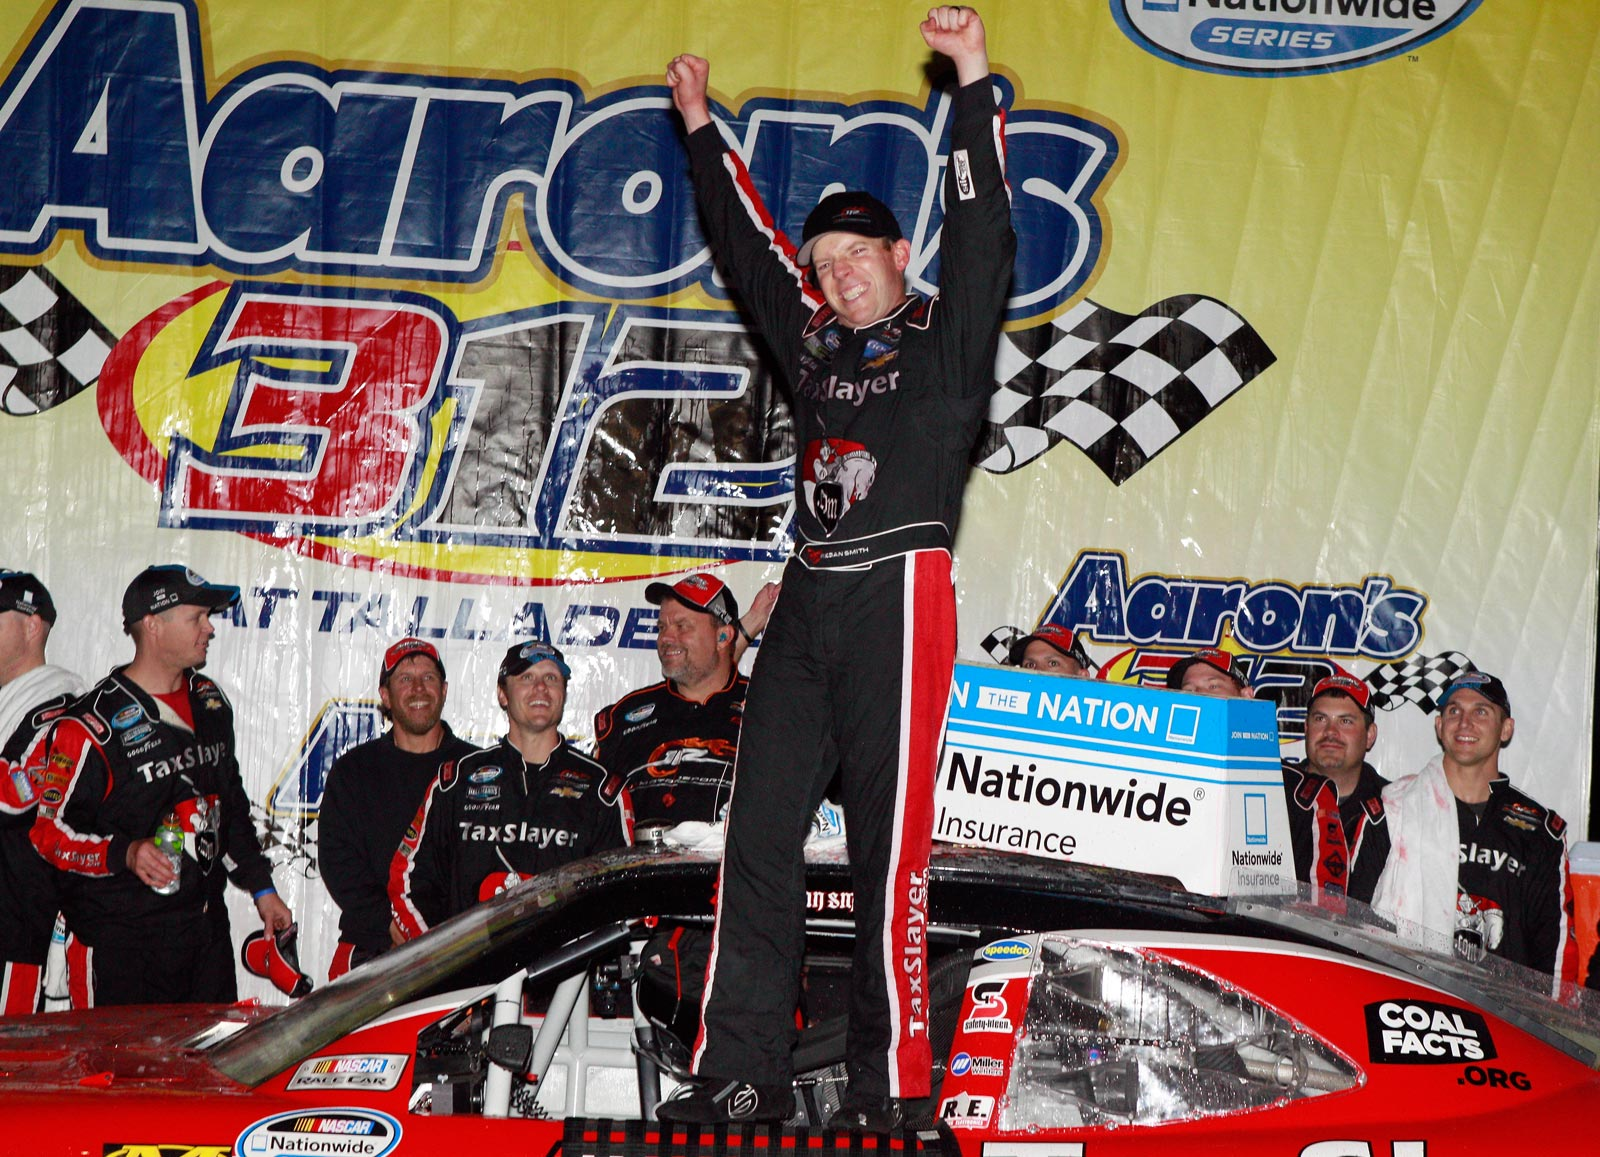 Regan_Smith_Win_Talladega_NNS_050413_2